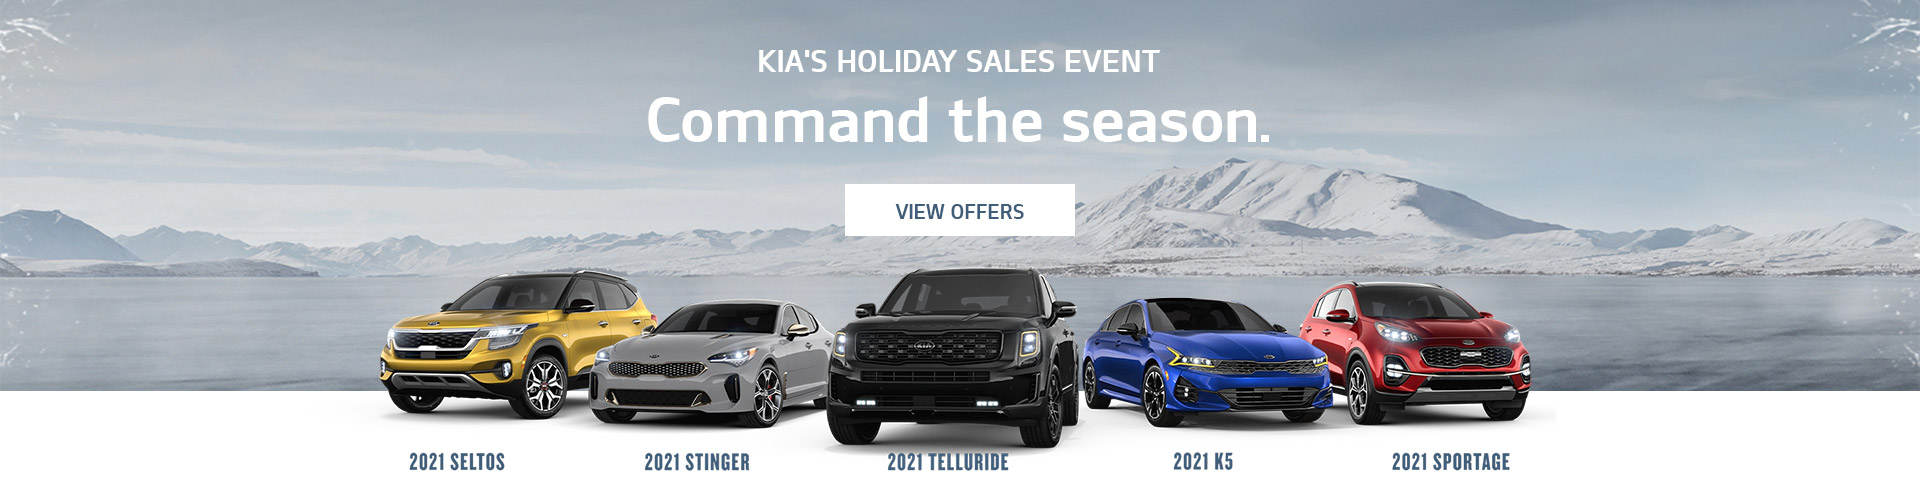 Kia's Holiday Sales Event - Command The Season.